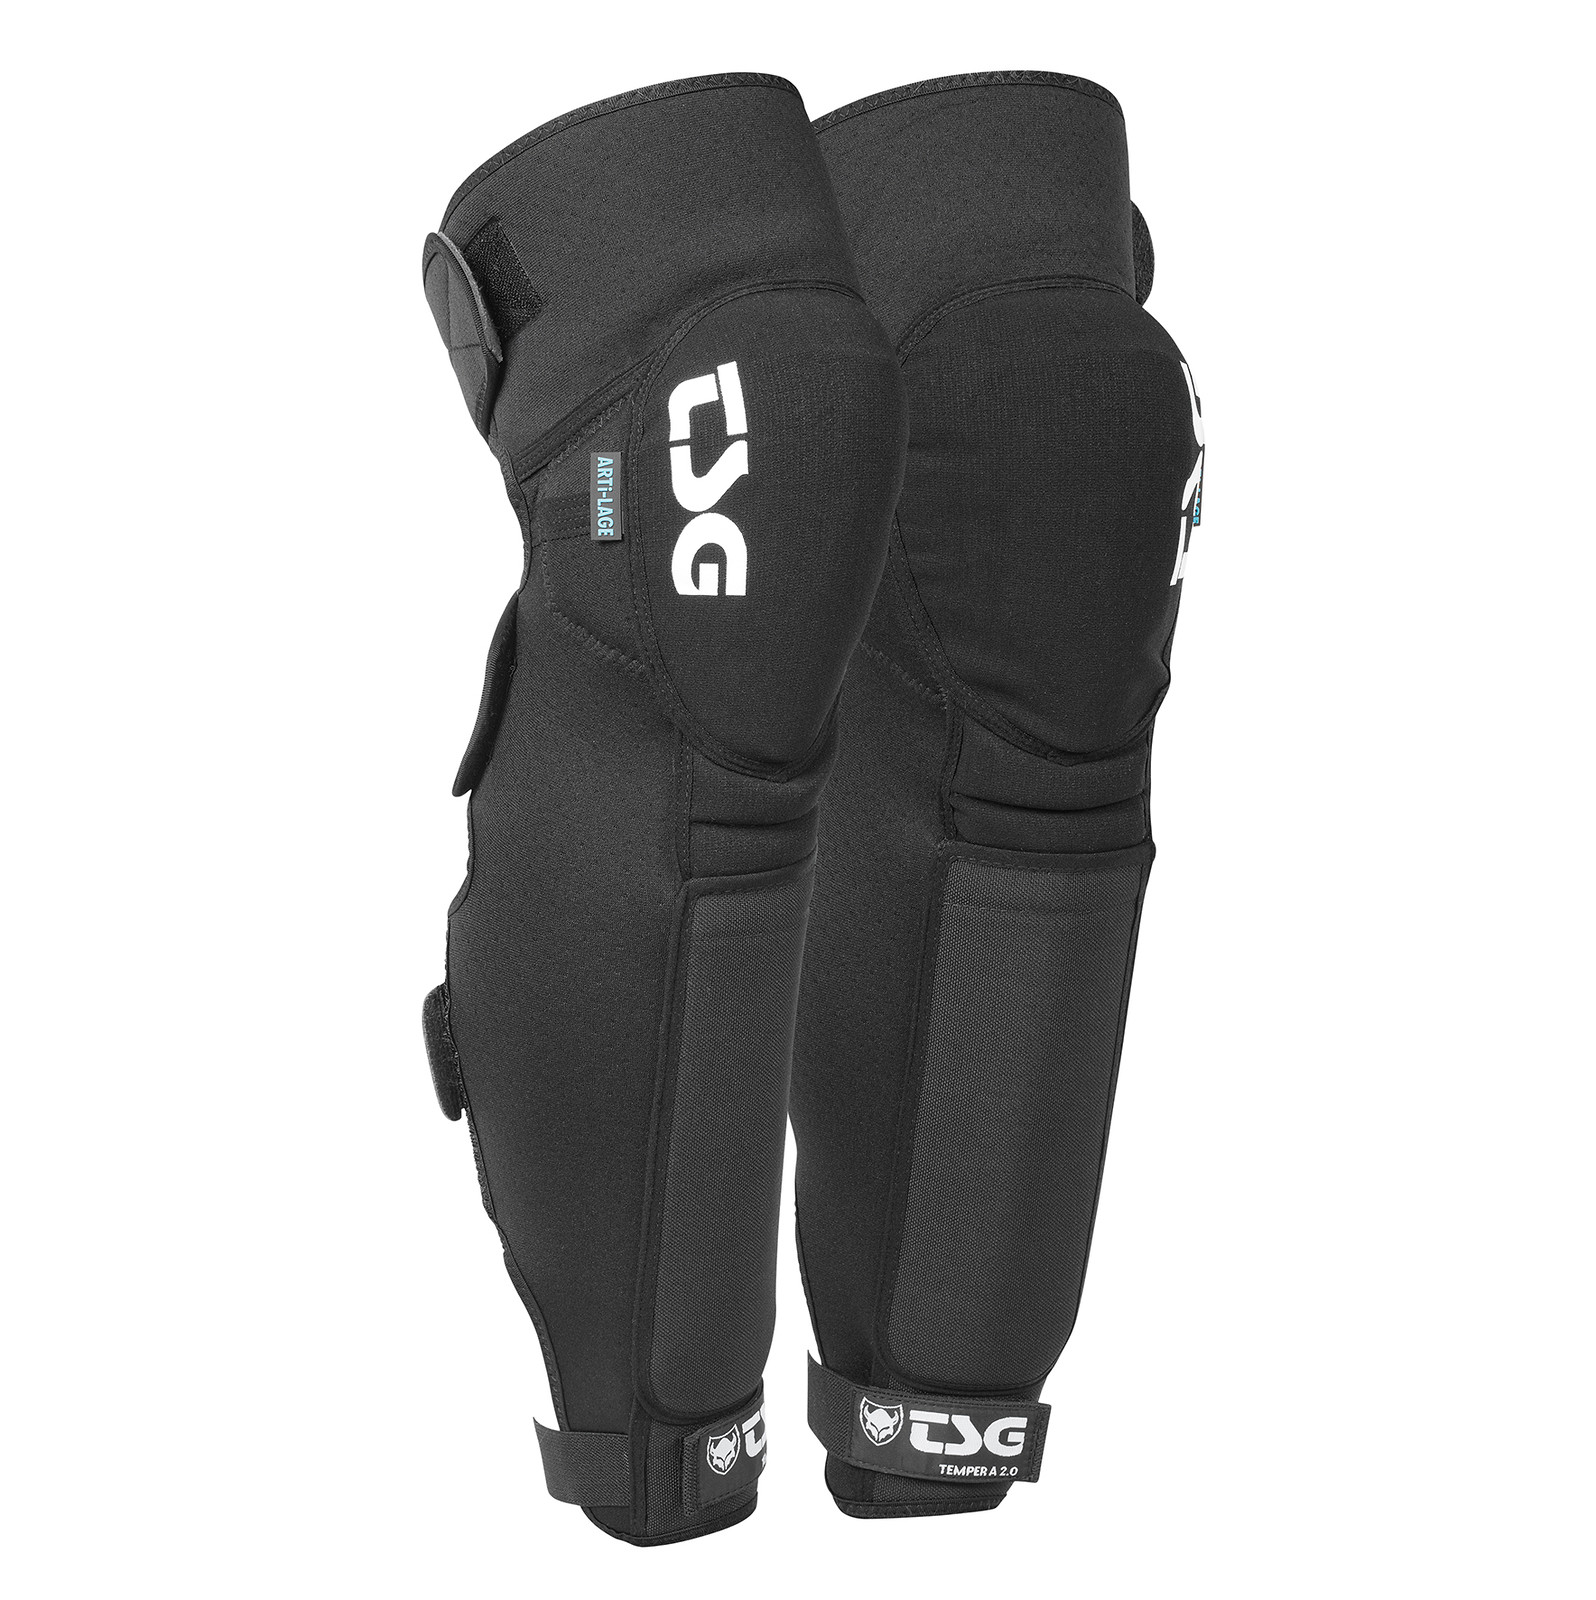 TSG Temper A 2.0 Knee-Shinguard